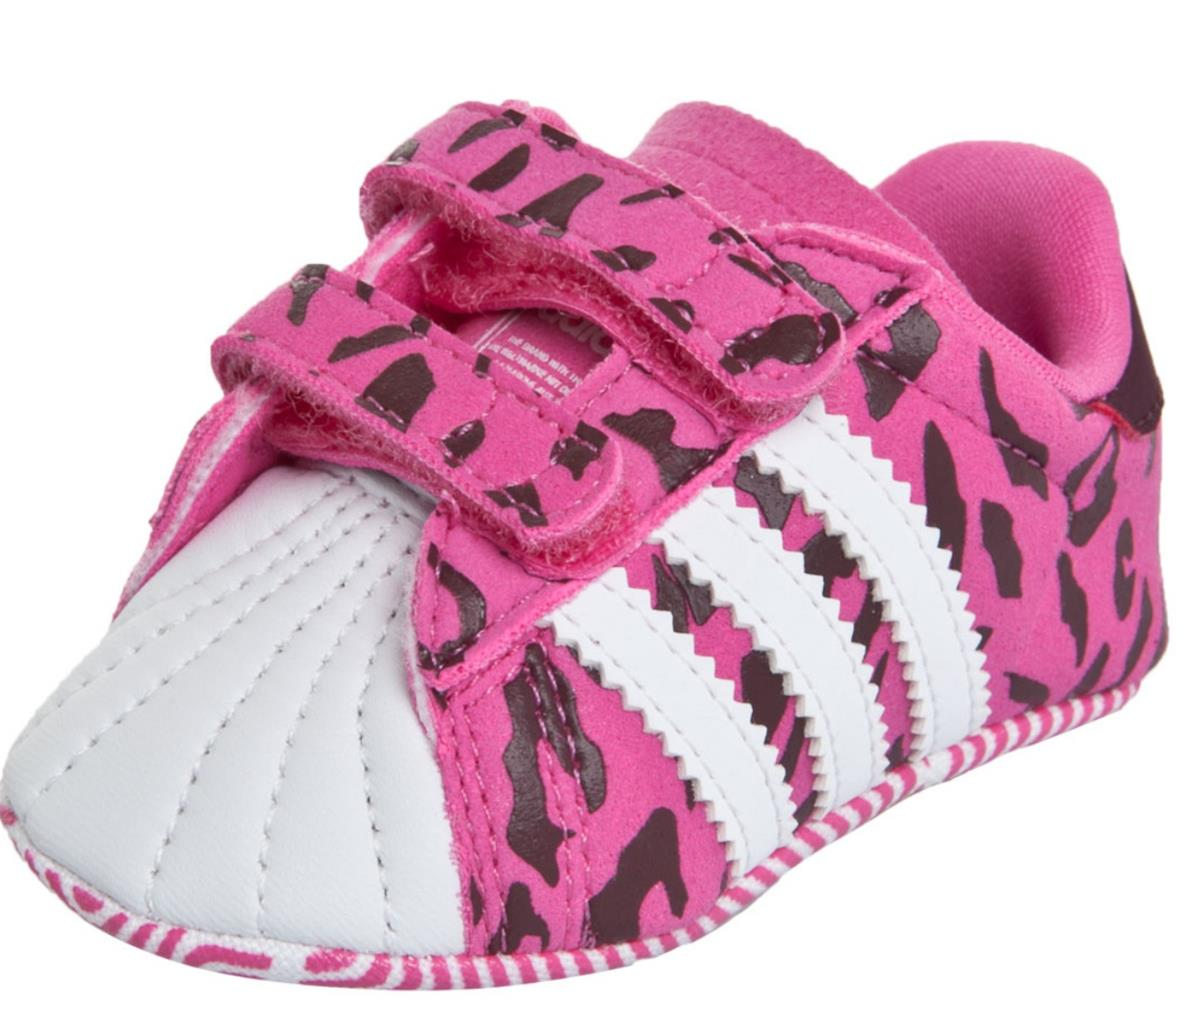 on sale f7f5d 2155a adidas superstar 2 bambino rose